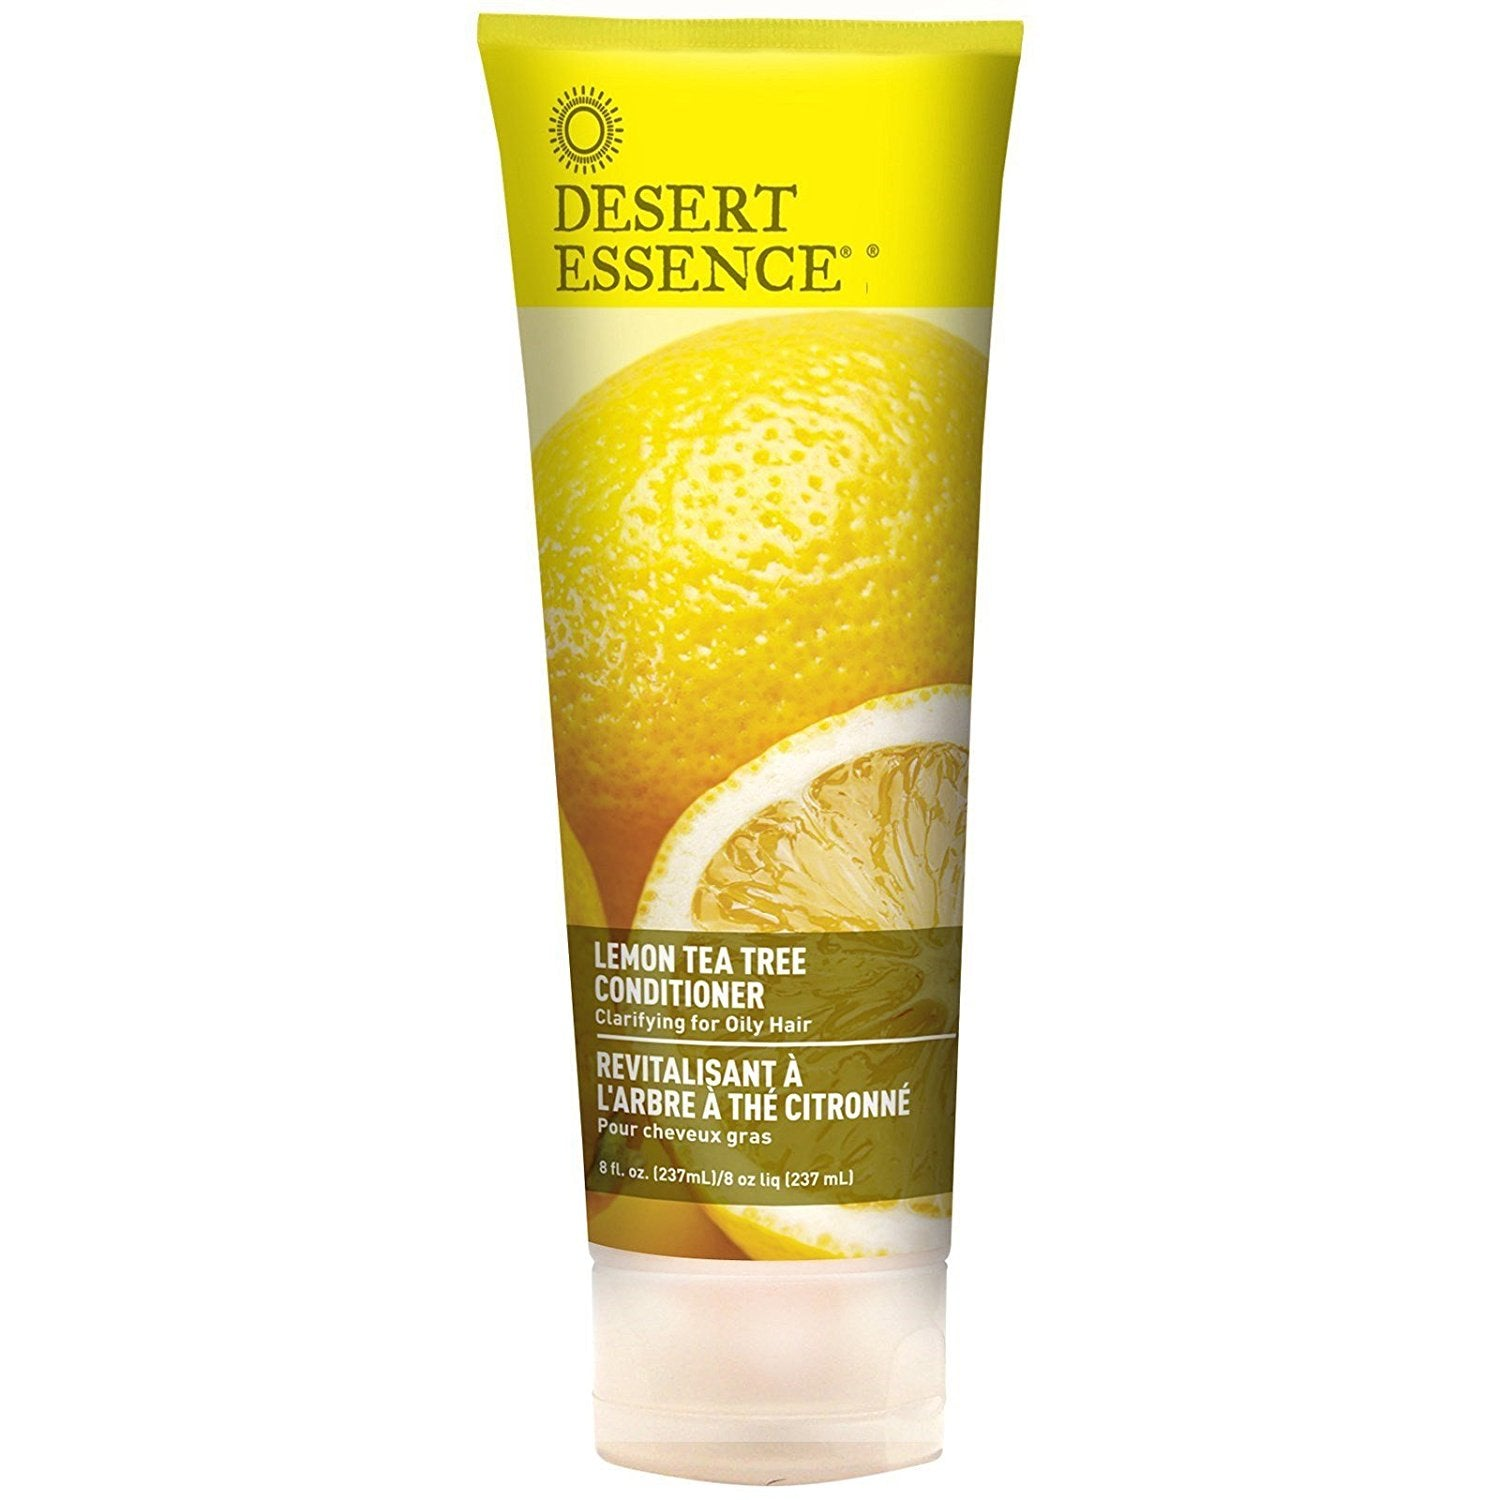 Pack of 2 x Desert Essence Conditioner Lemon Tea Tree